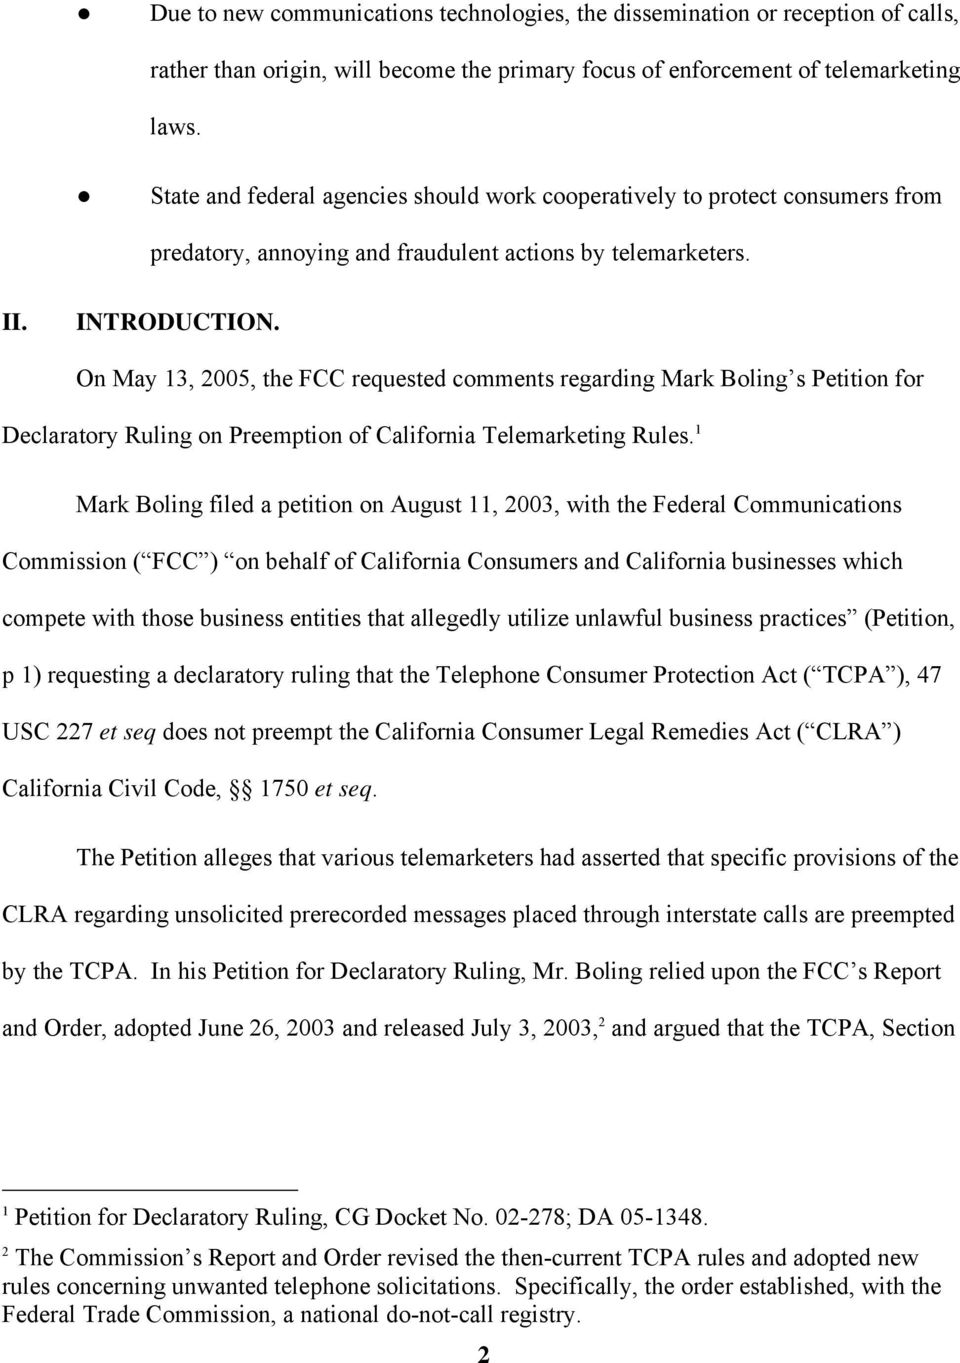 On May 13, 2005, the FCC requested comments regarding Mark Boling s Petition for Declaratory Ruling on Preemption of California Telemarketing Rules.